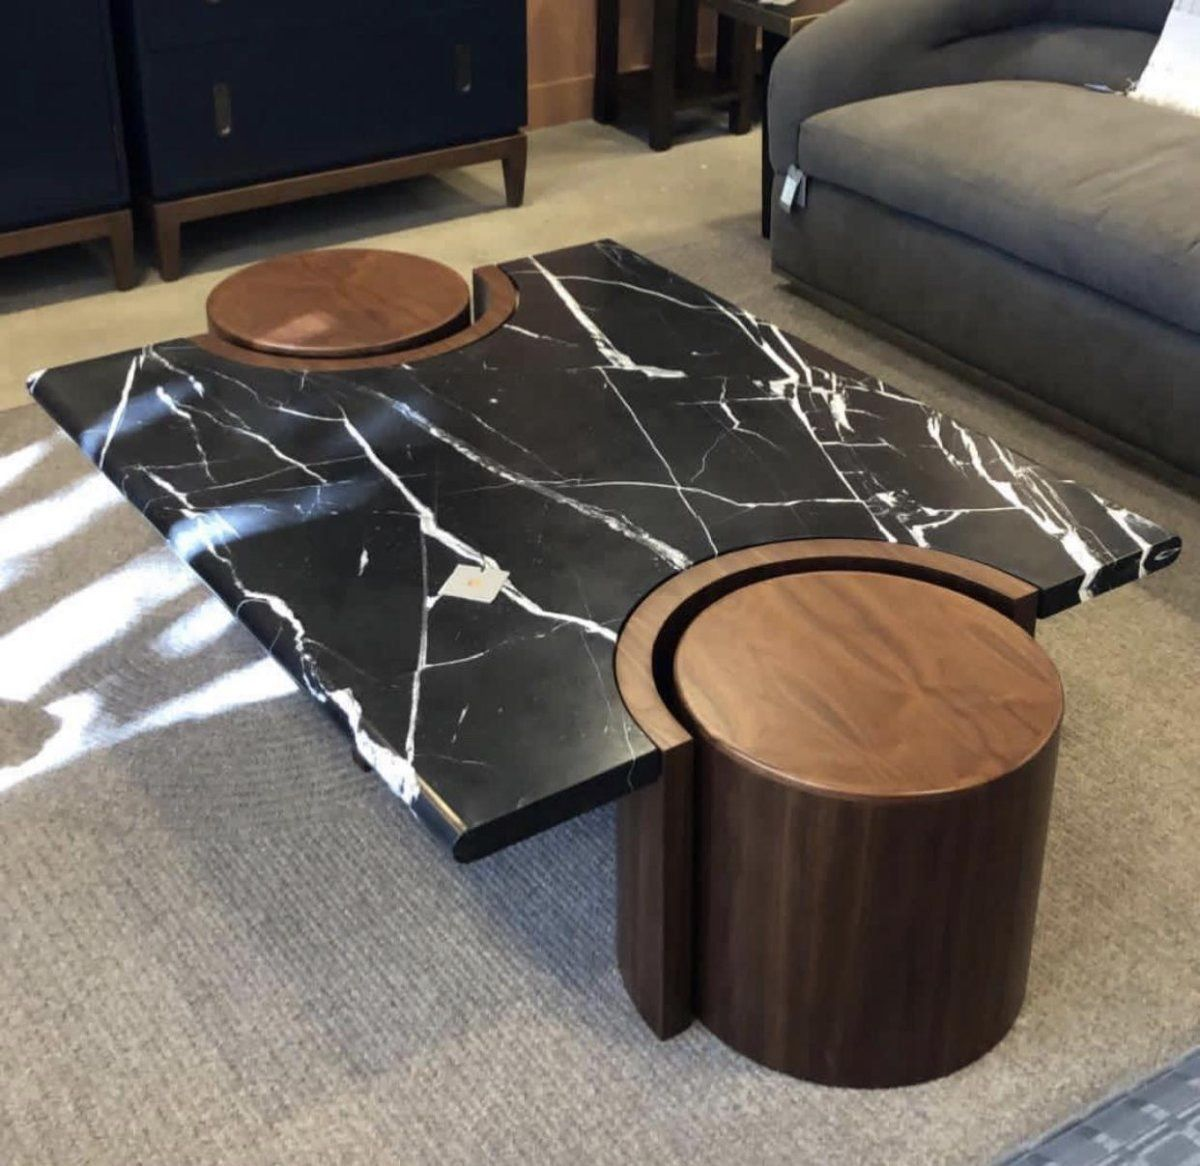 Pin By Ji Myeong Moon On Design Ideas Centre Table Design Tea Table Design Modern Square Coffee Table [ 1166 x 1200 Pixel ]